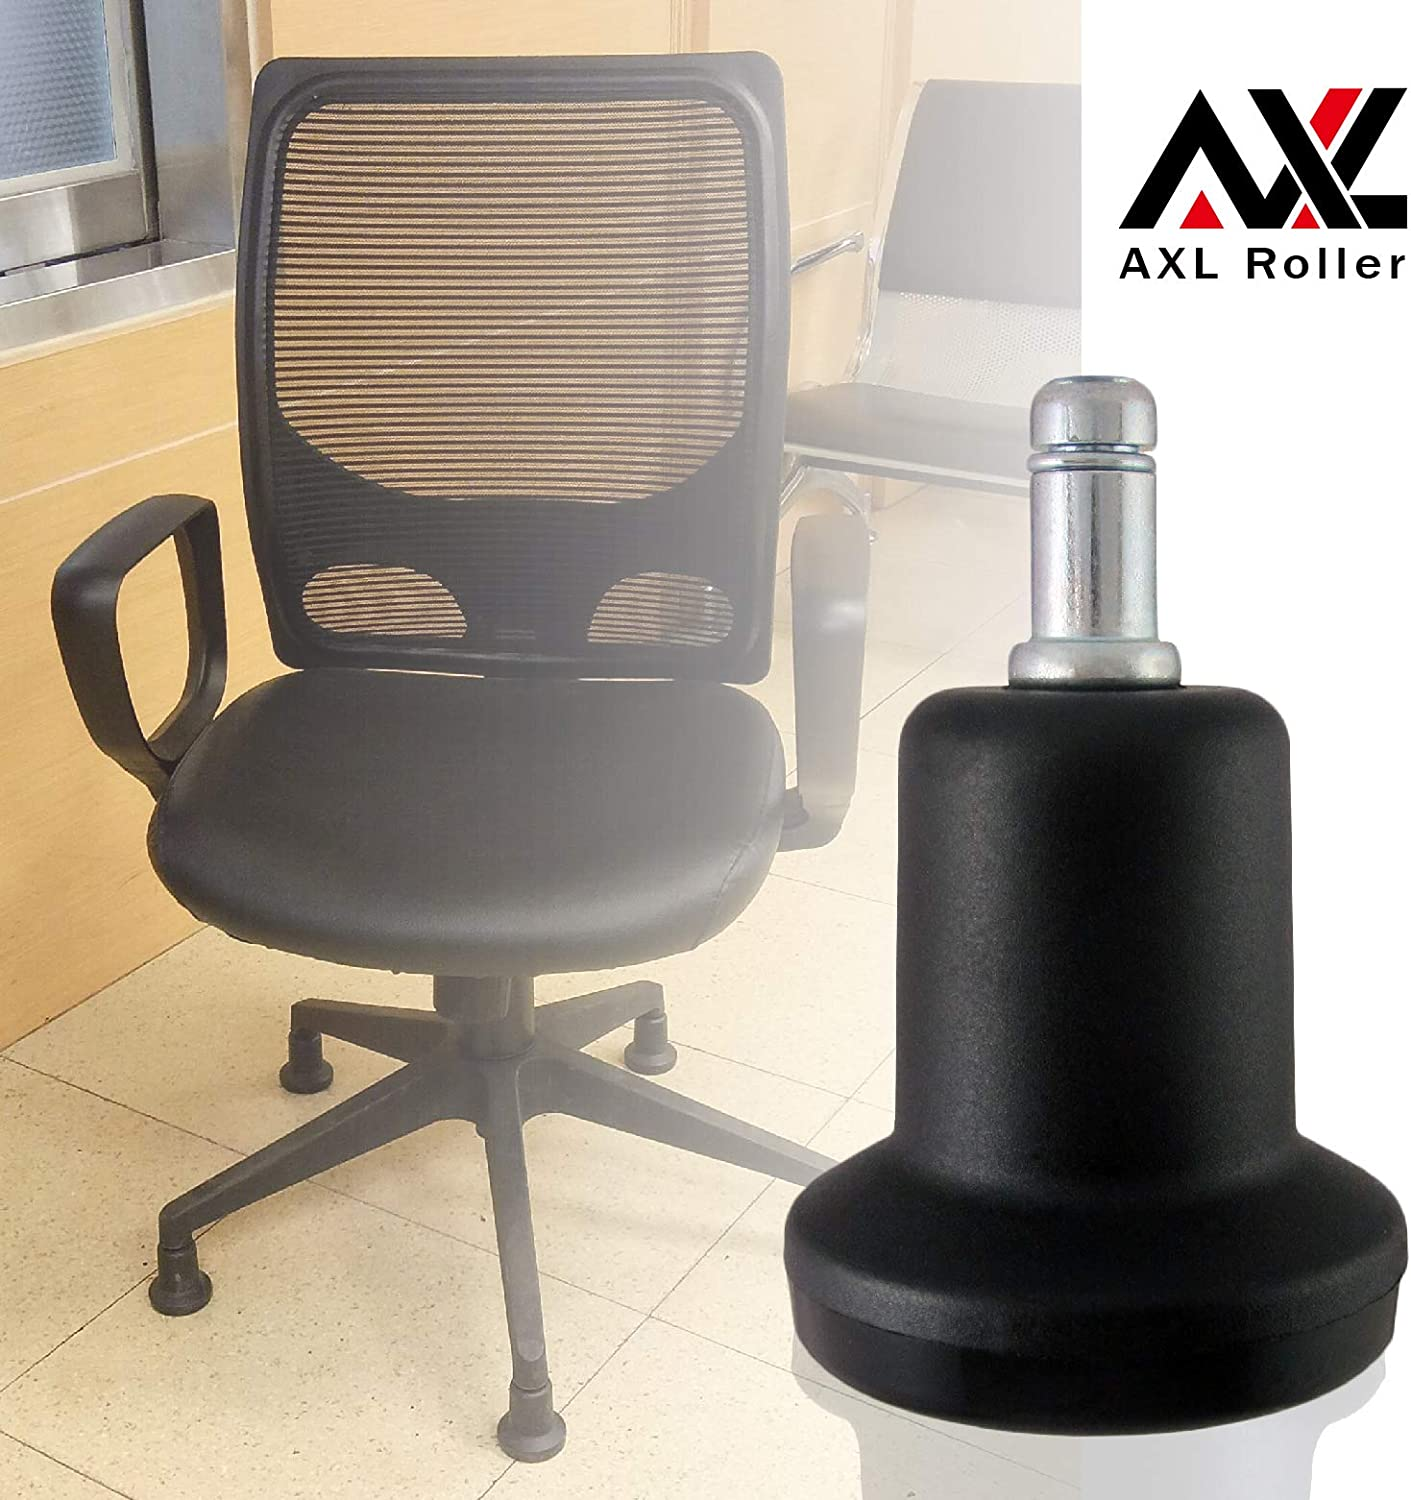 AXL Chair Glides to Replace Casters, Office Chairs Stationery Office Replacement Chair Without Wheels and High Bell Glides - Set of 5 Pack (High)